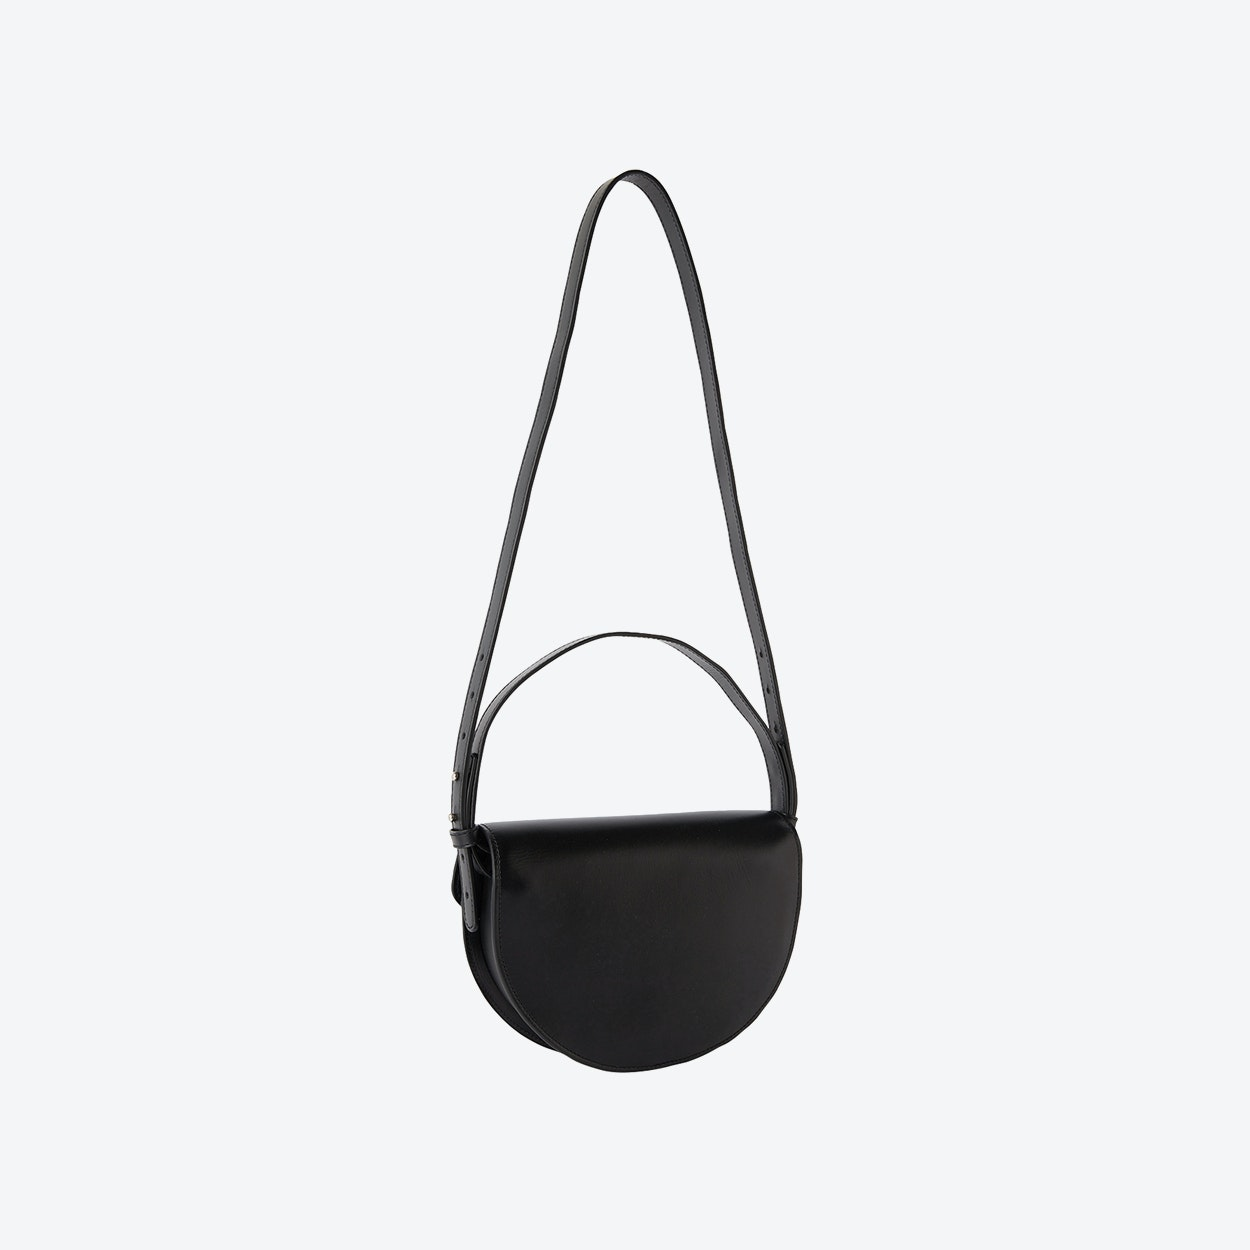 4b90de6fe45 Black MAVI Saddle Bag by Zamt Projects - Fy